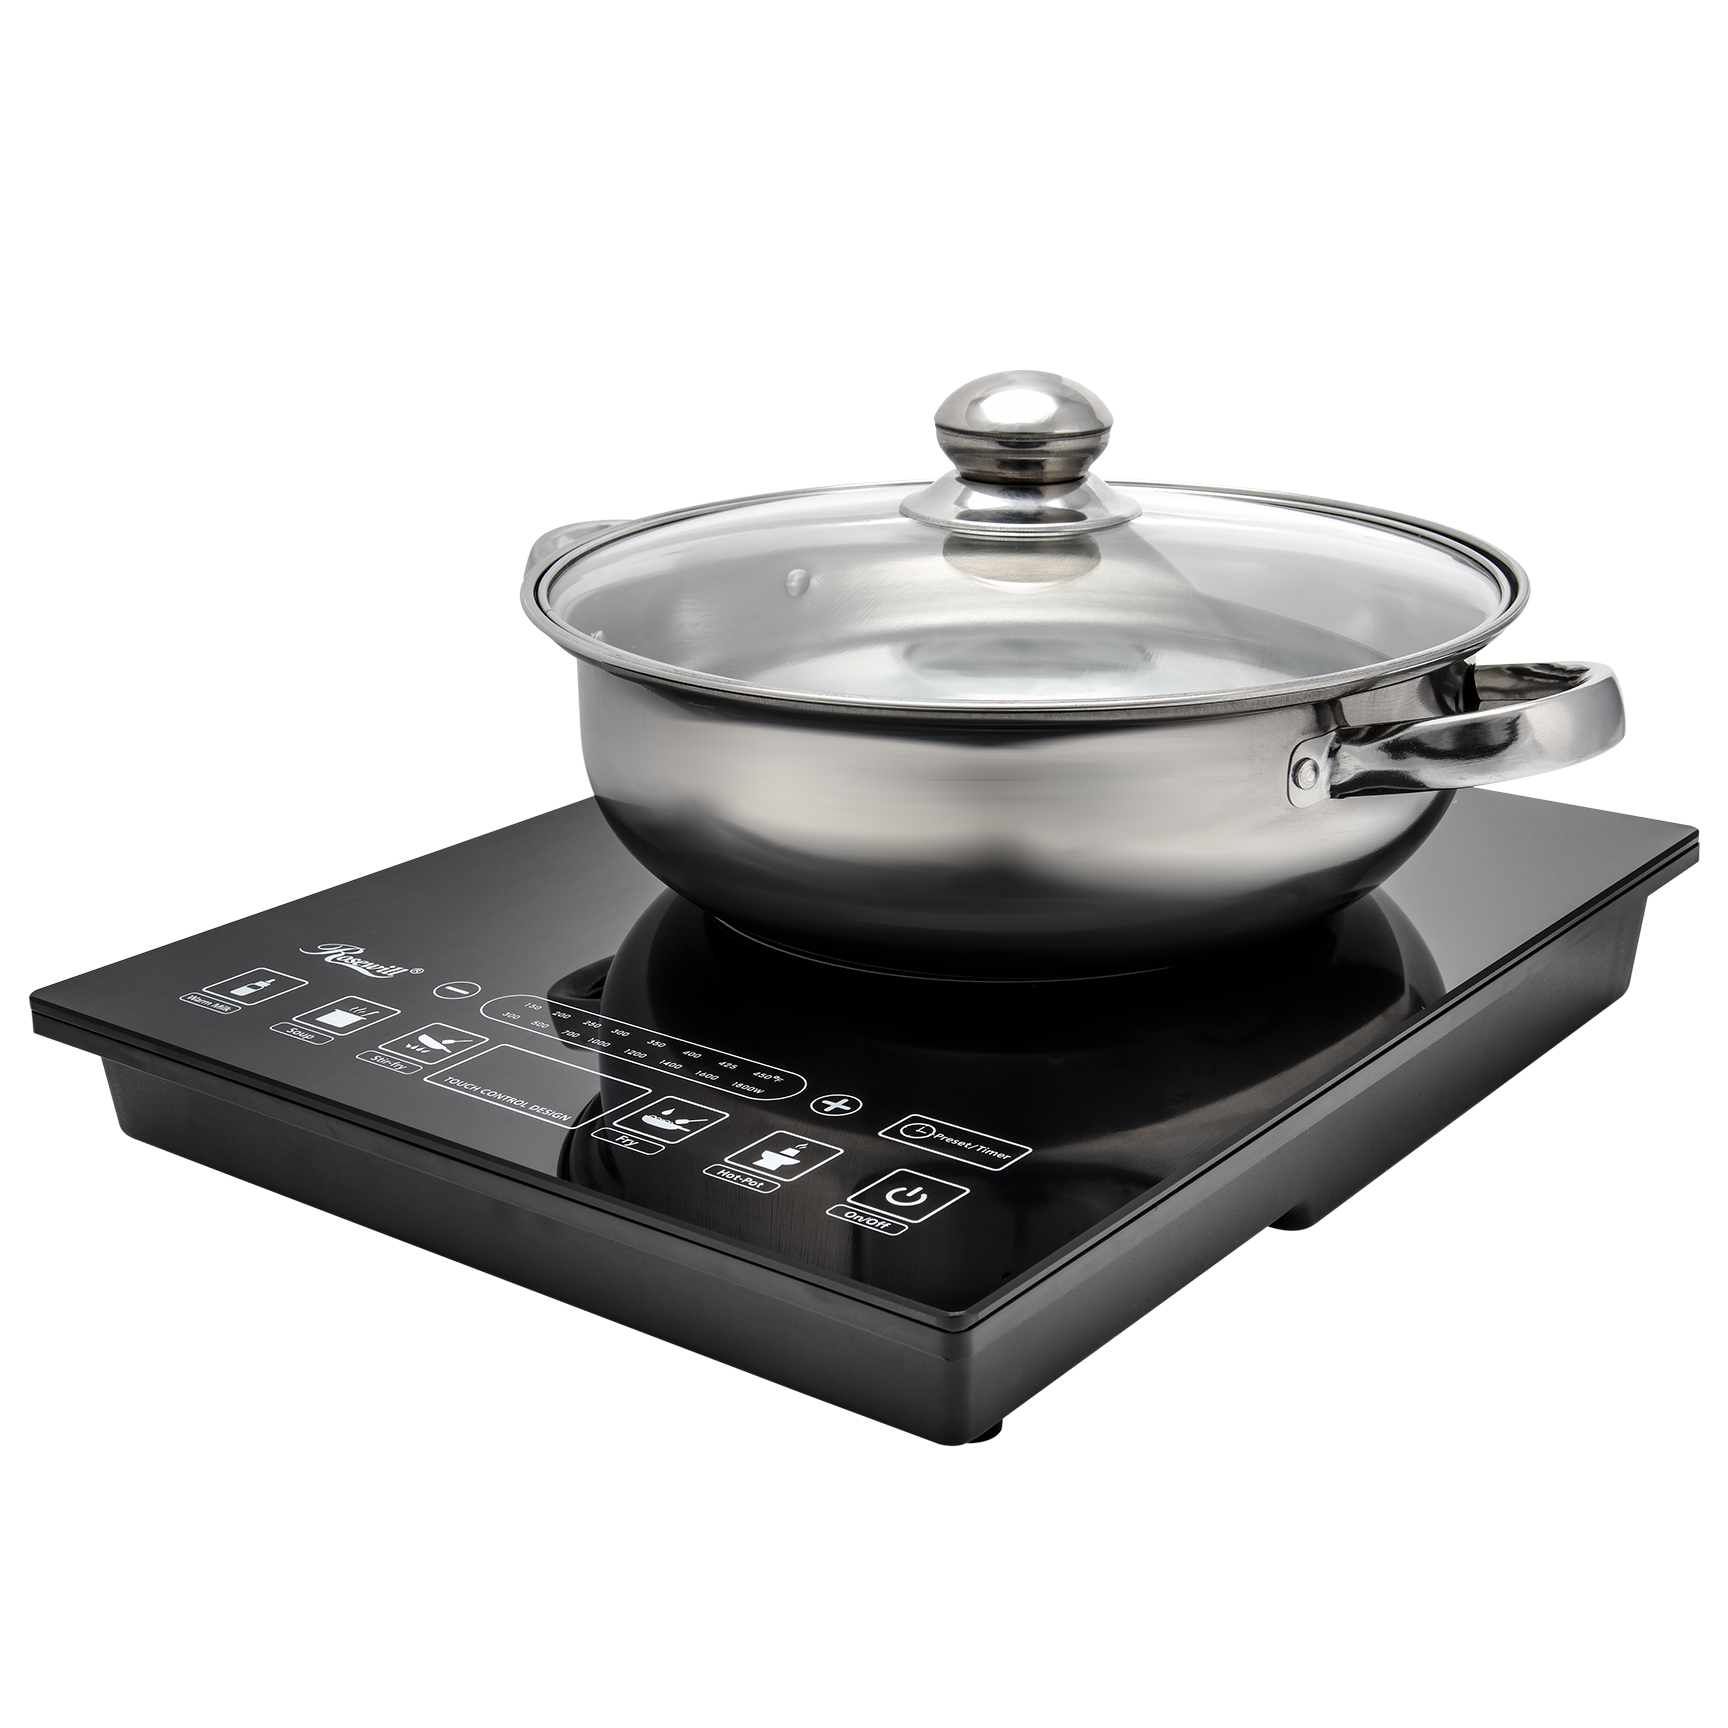 Rosewill Portable Induction Cooker Electric Hot Plate Includes 3.5Qt Stainless Steel Pot 1800 Watts RHAI-15001